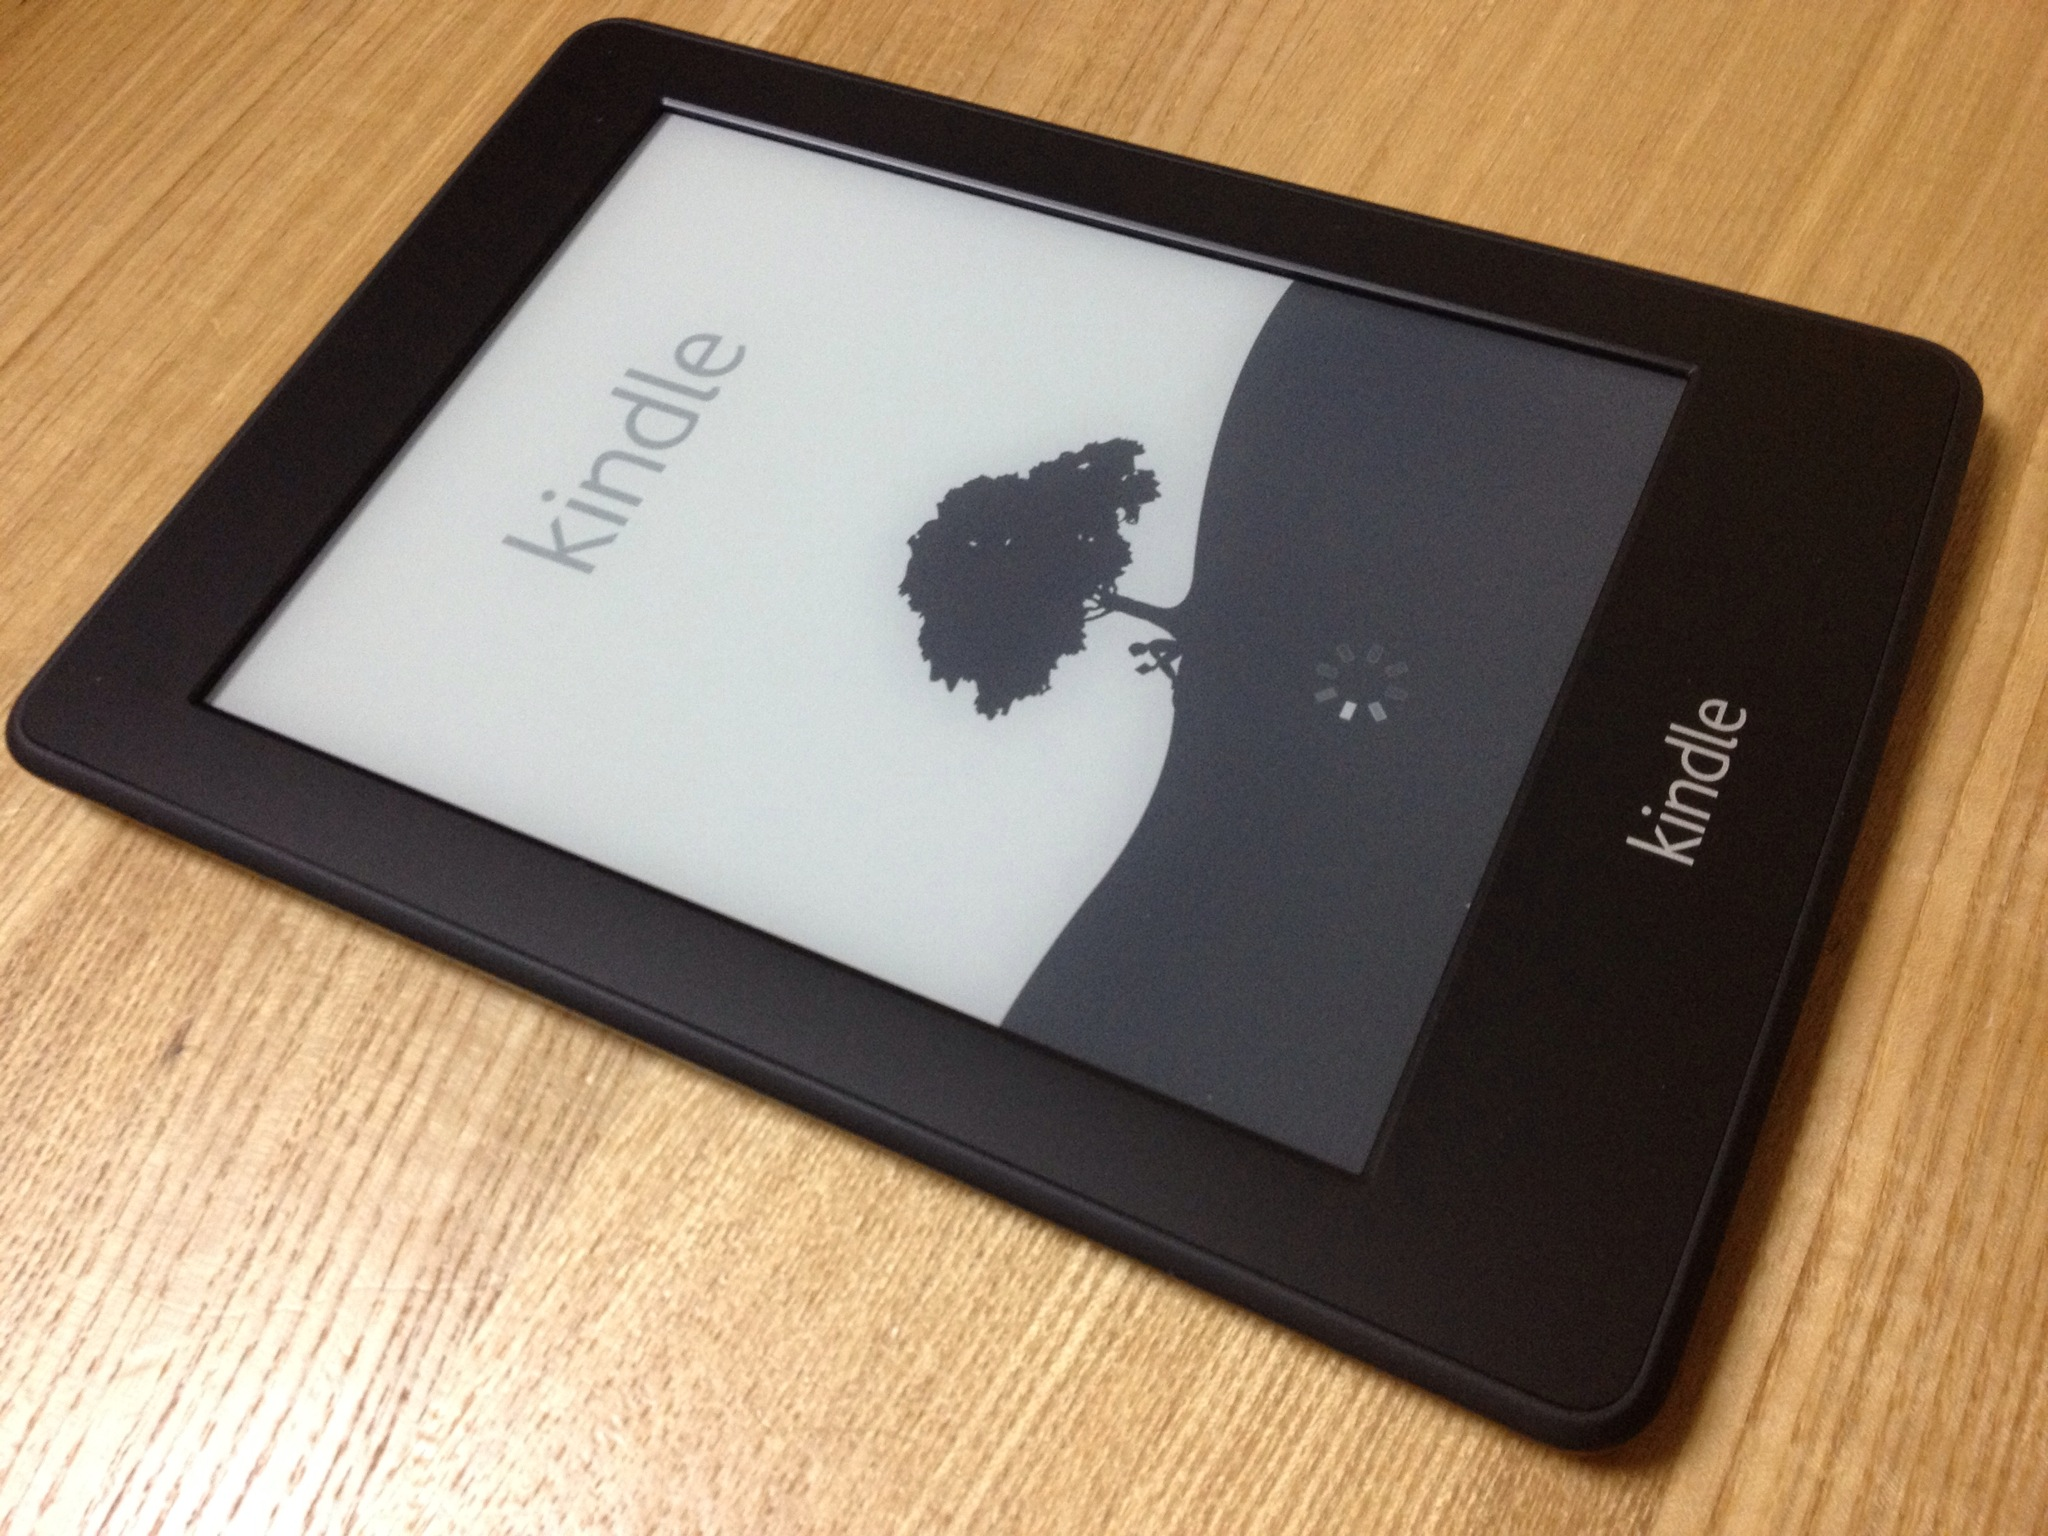 File:Kindle Paperwhite 3G jpg - Wikimedia Commons